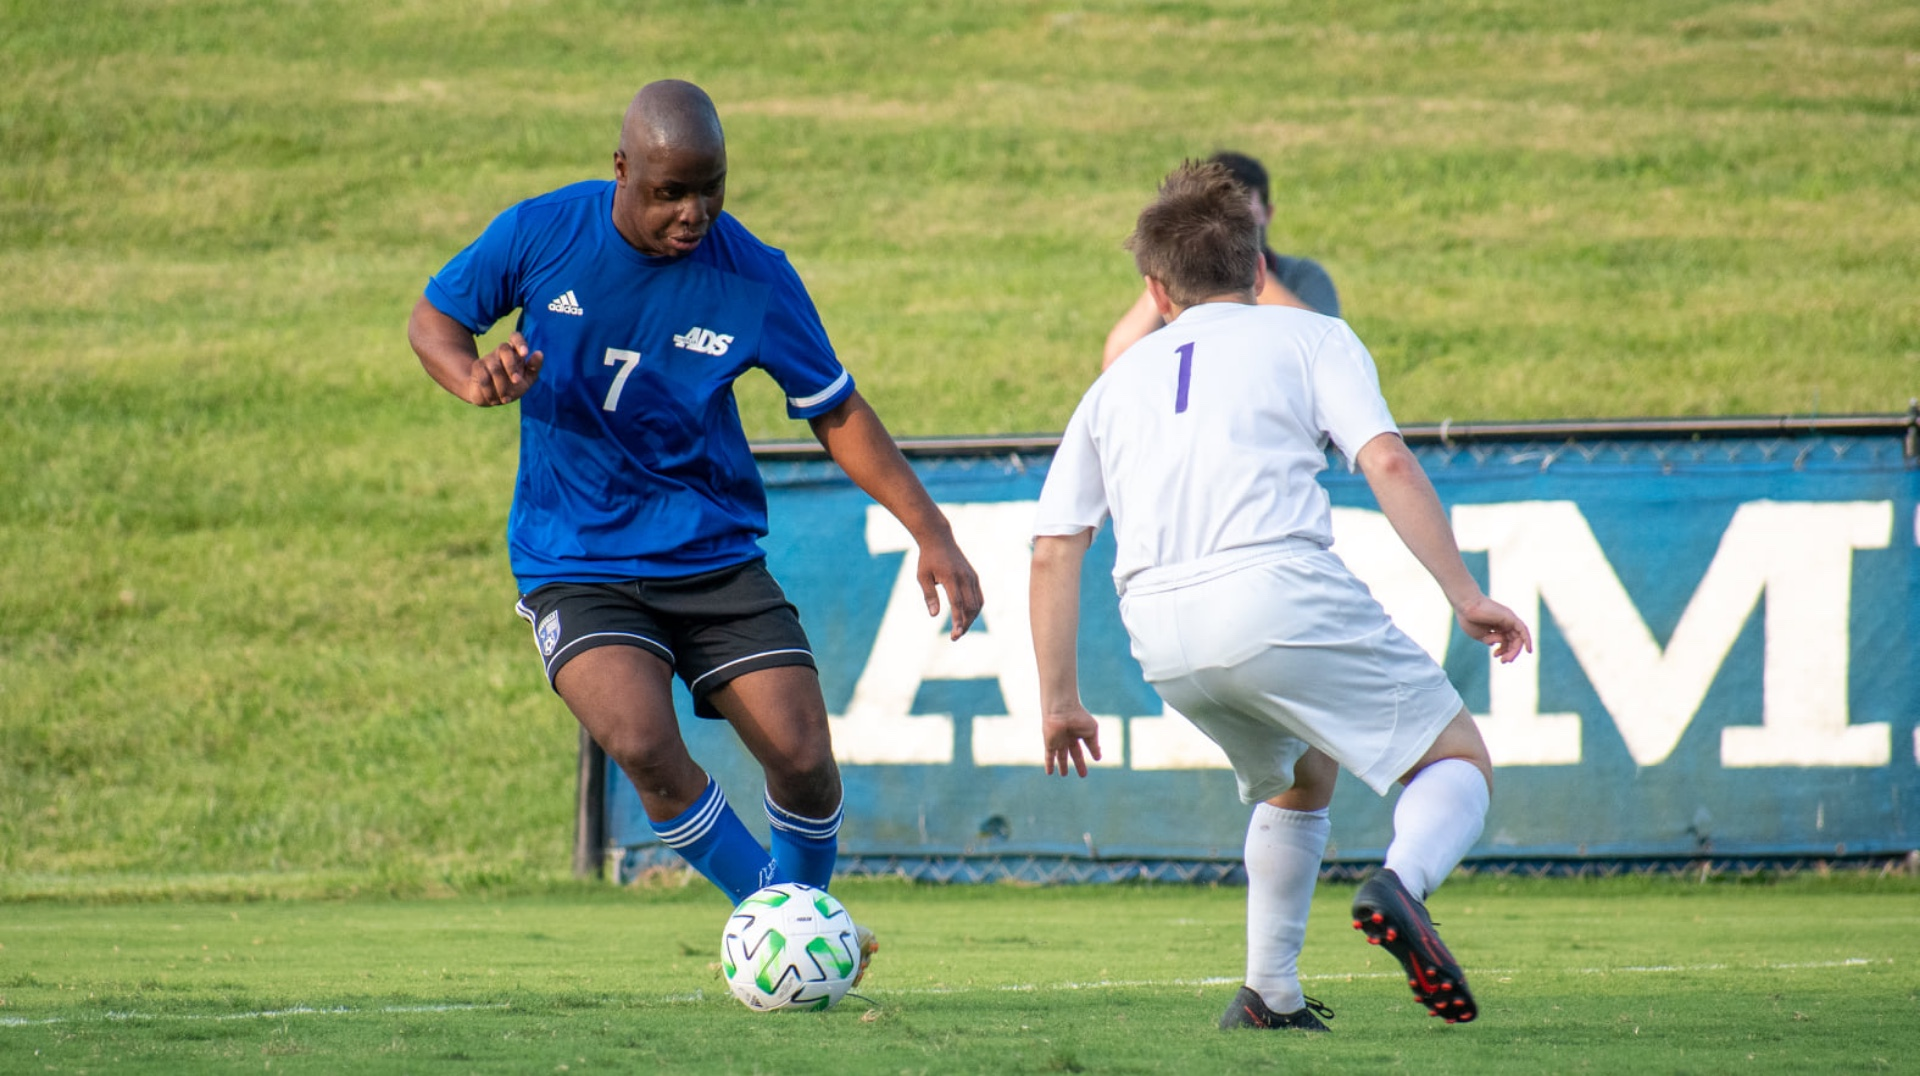 Remilson is dribbling the ball against an opponent in a soccer match. He is wearing his full Danville uniform: a blue soccer jersey and black shorts.